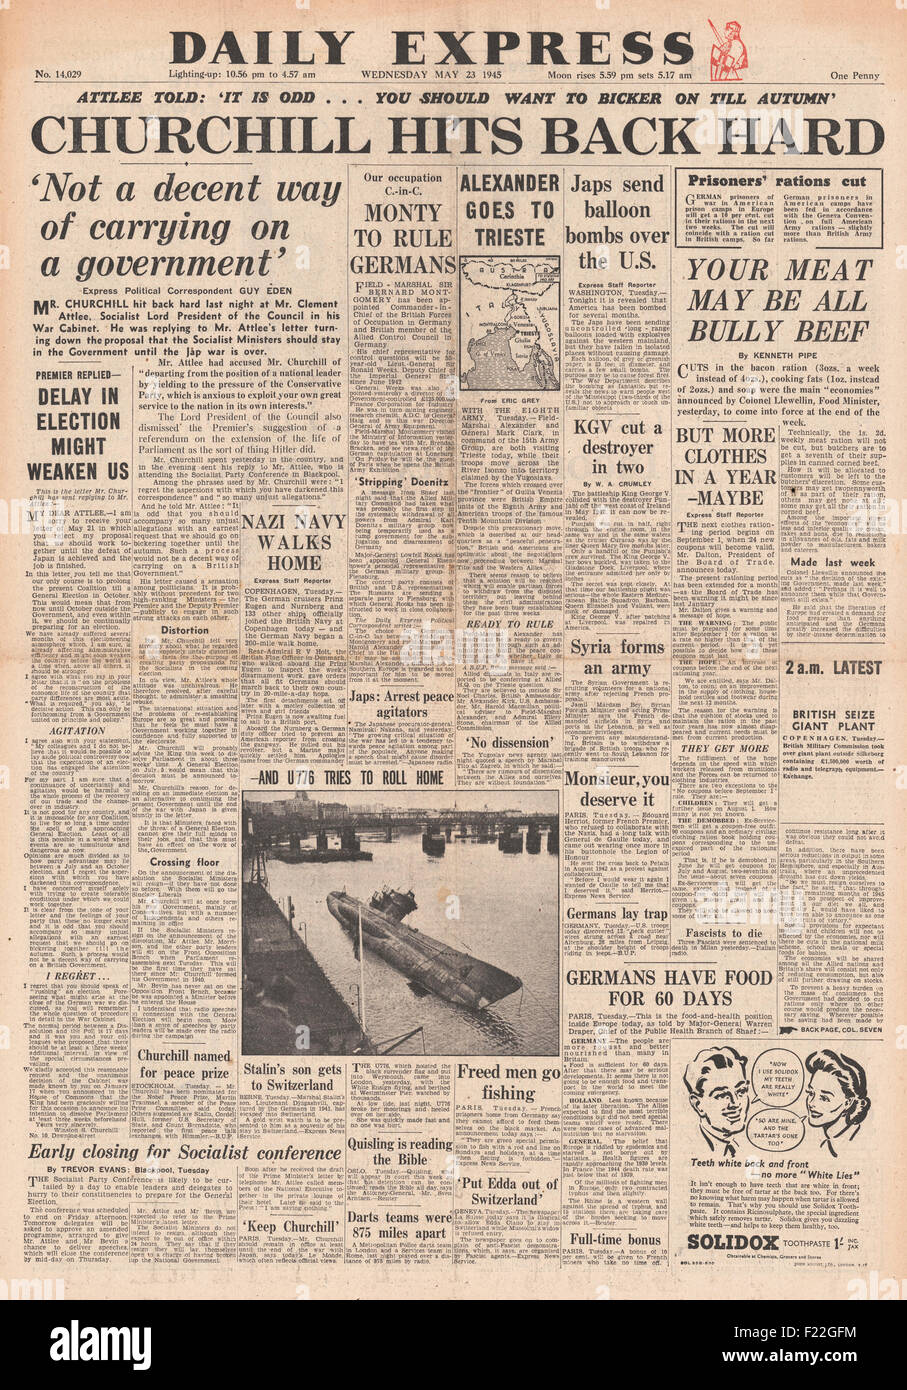 1945 Daily Express front page reporting General Election Announced and Churchill Hits Back at Atlee - Stock Image